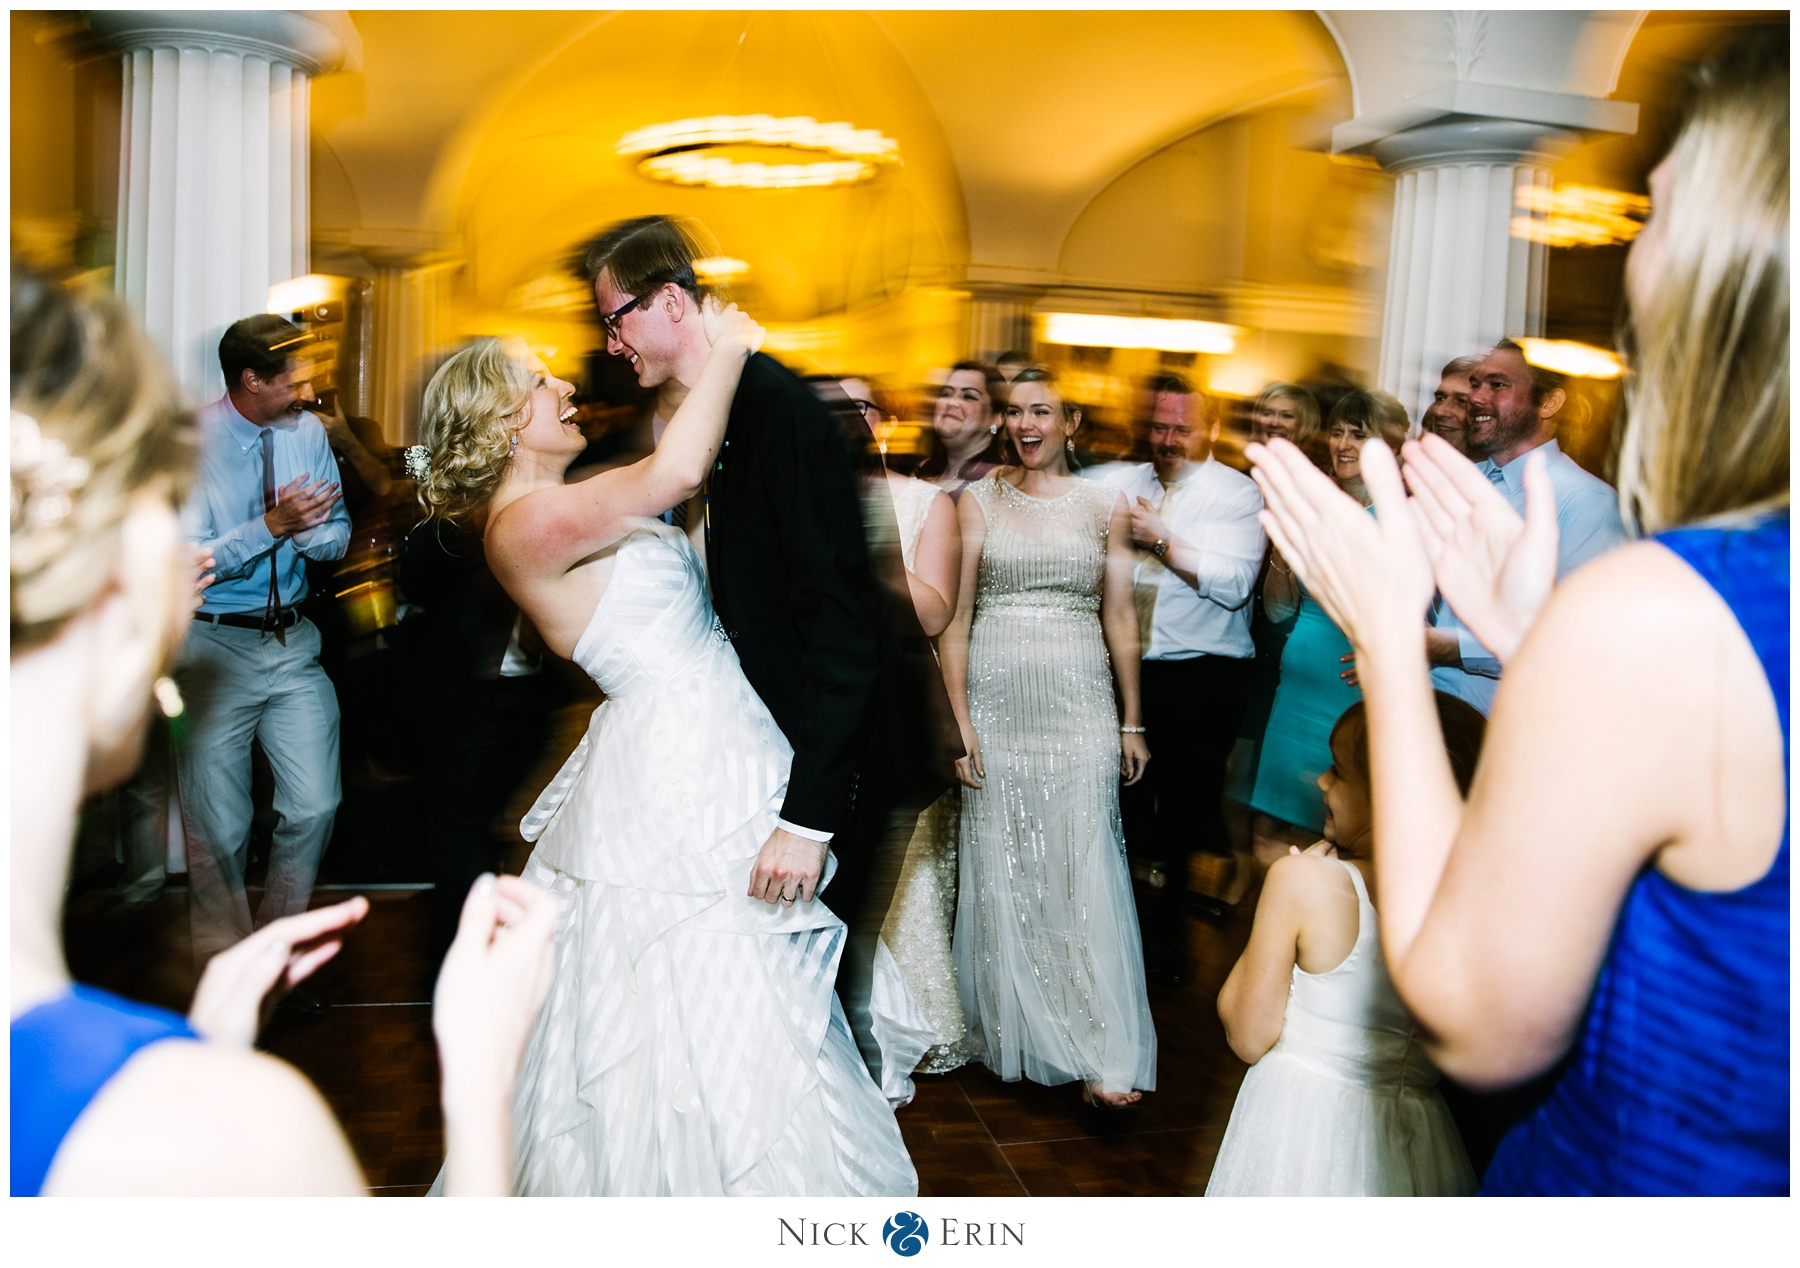 Donner_Photography_Washington DC Wedding_Rachel & Taylor_0060